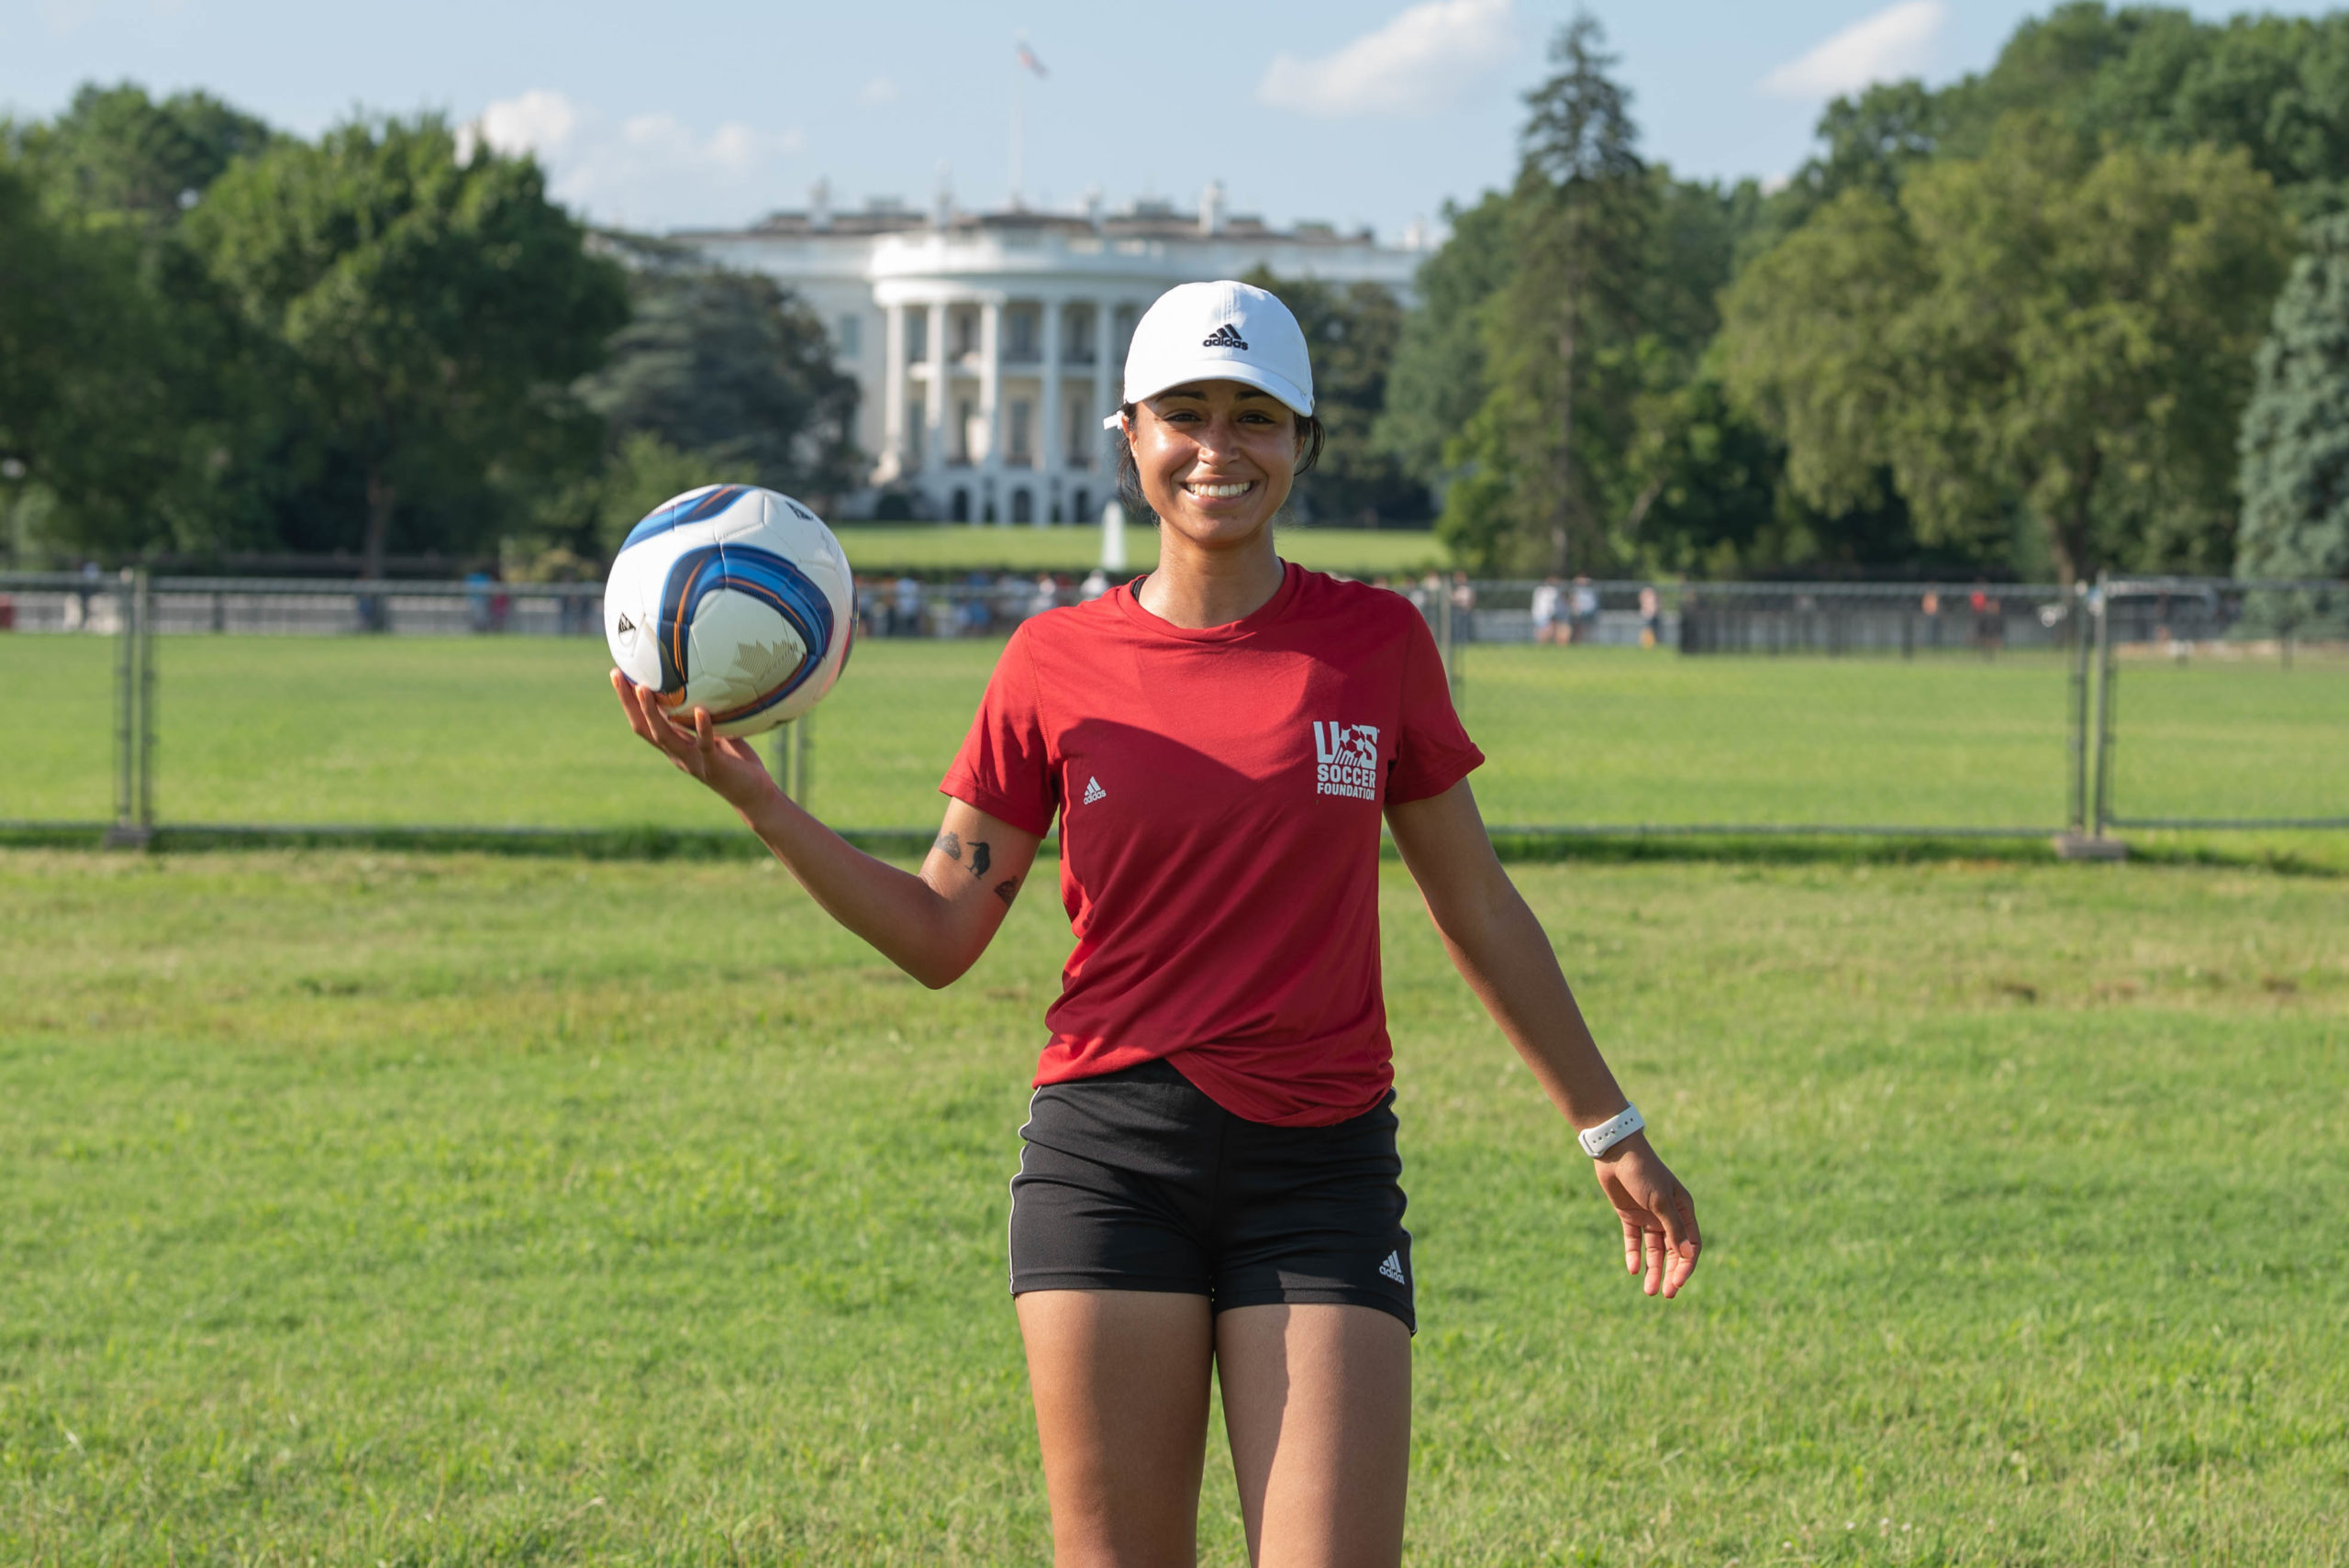 alana pictured in front of white house with soccer ball in red shirt and white hat